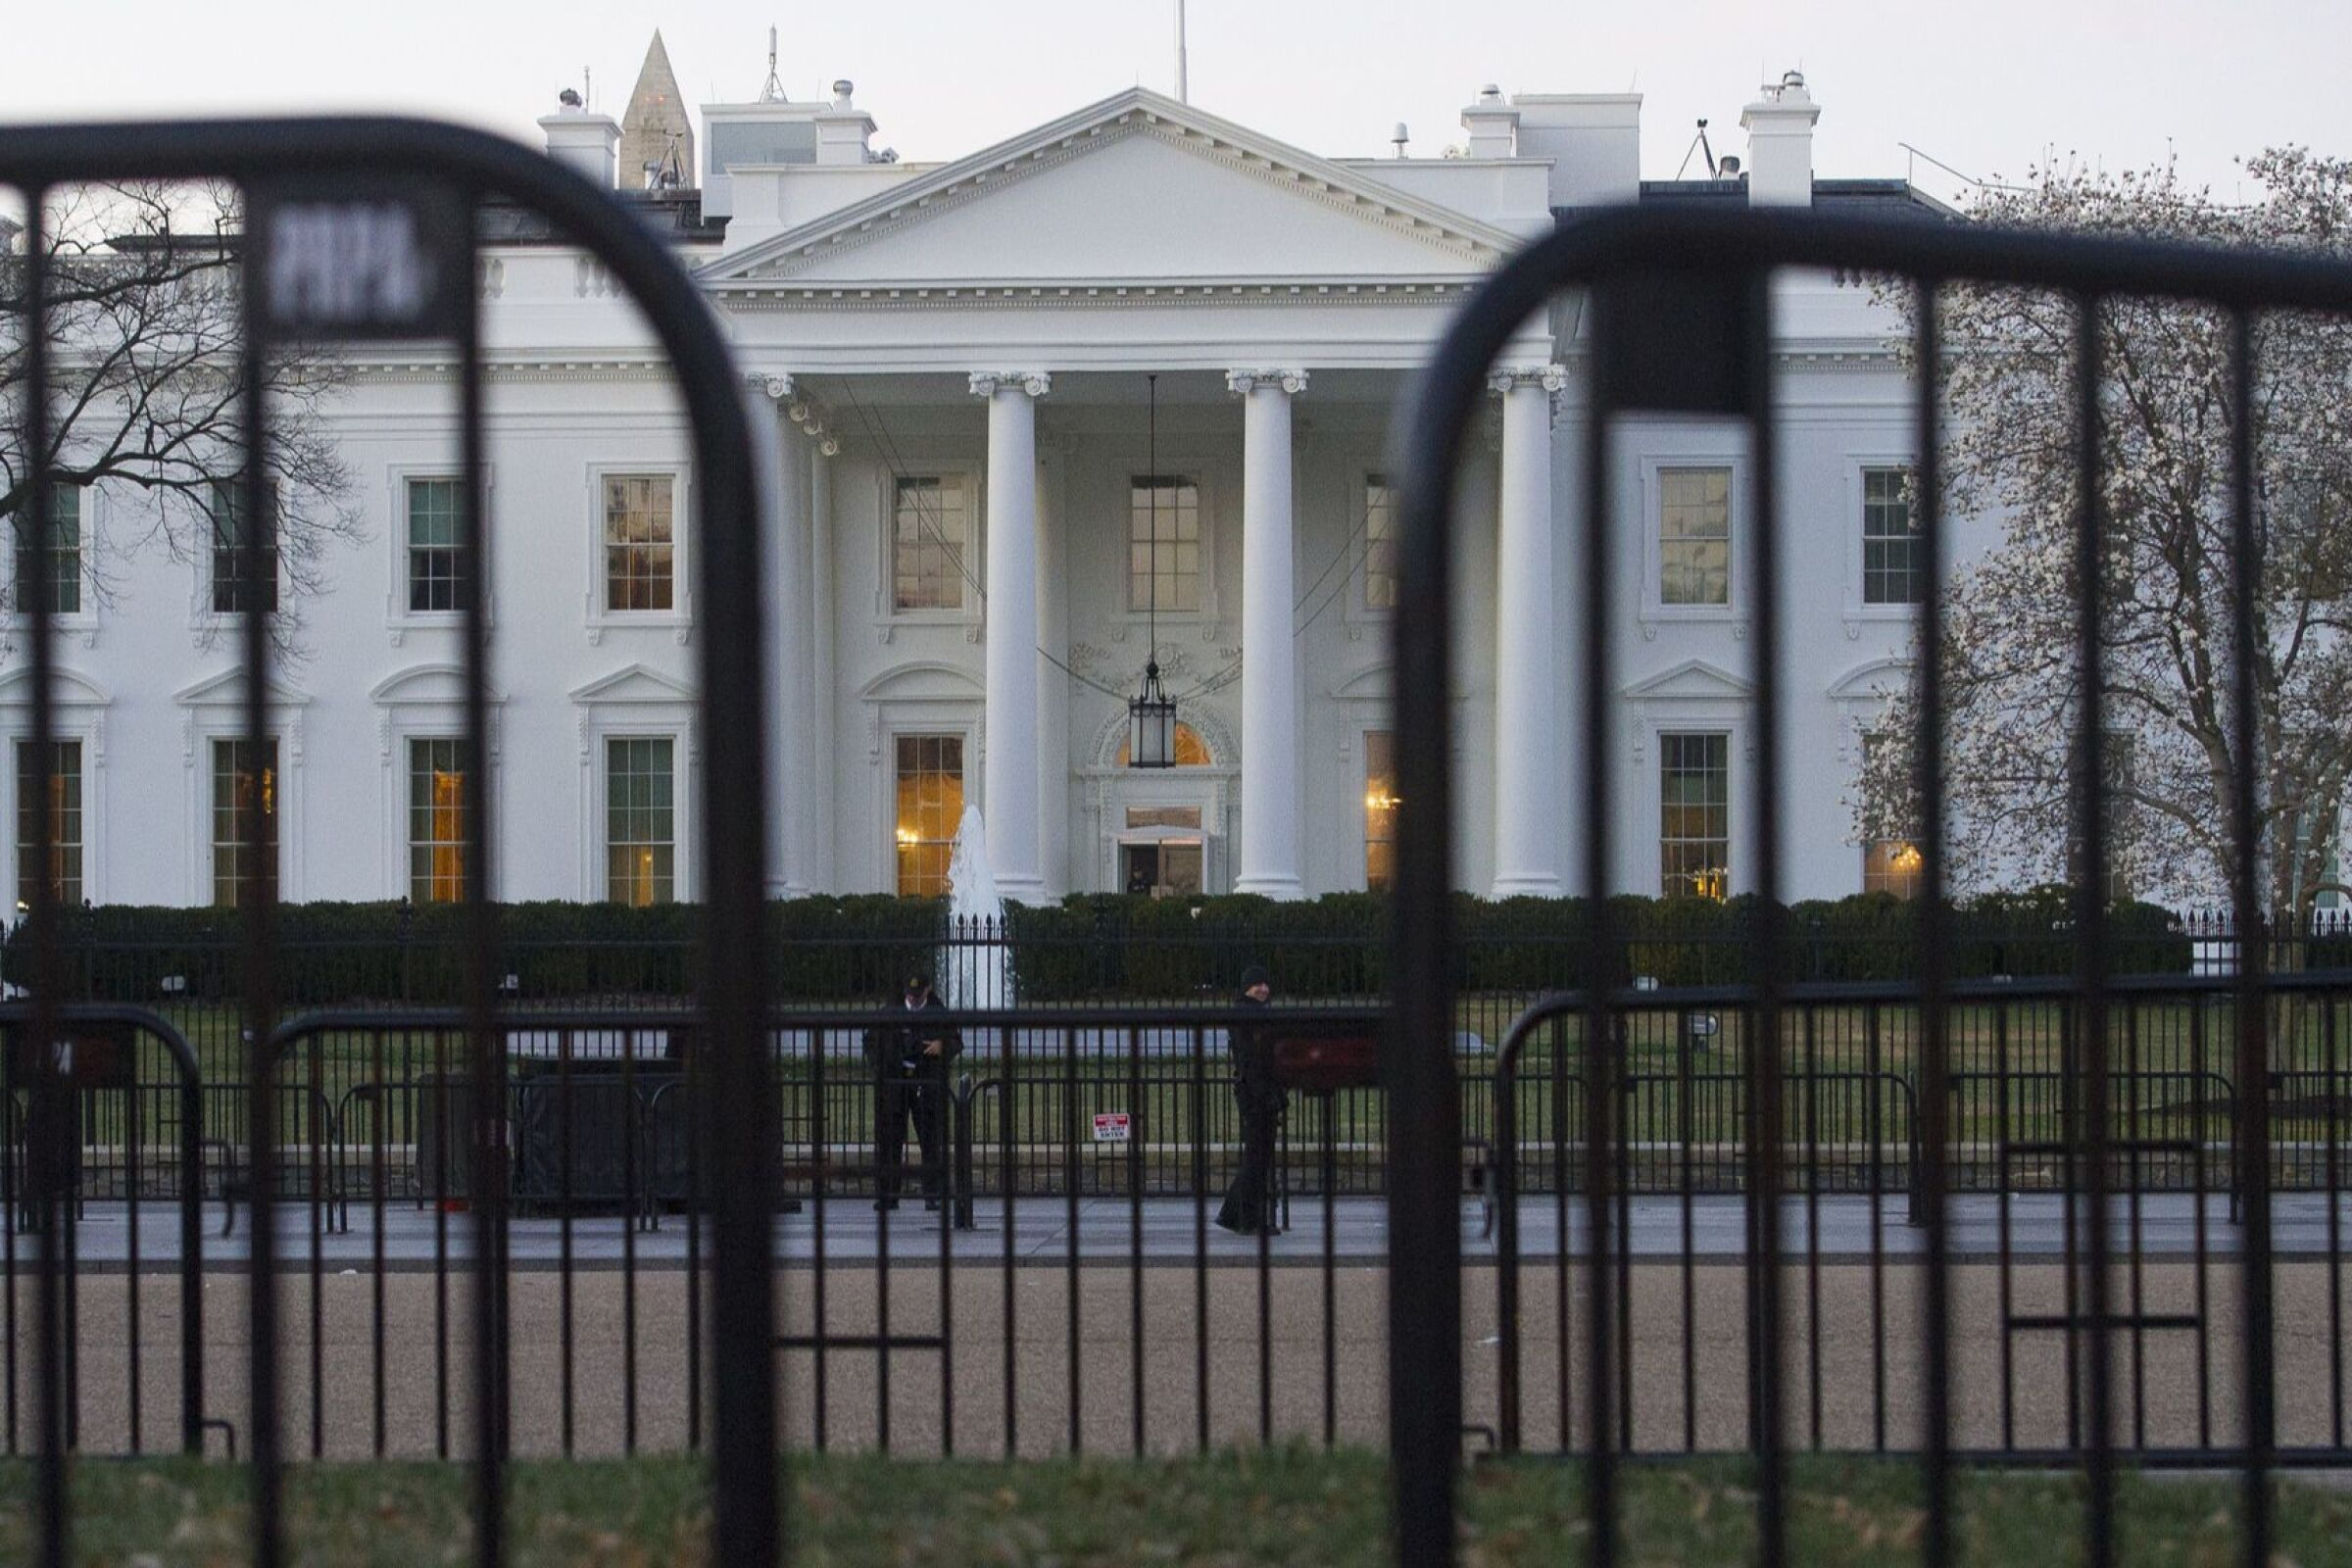 The White House behind security barriers.